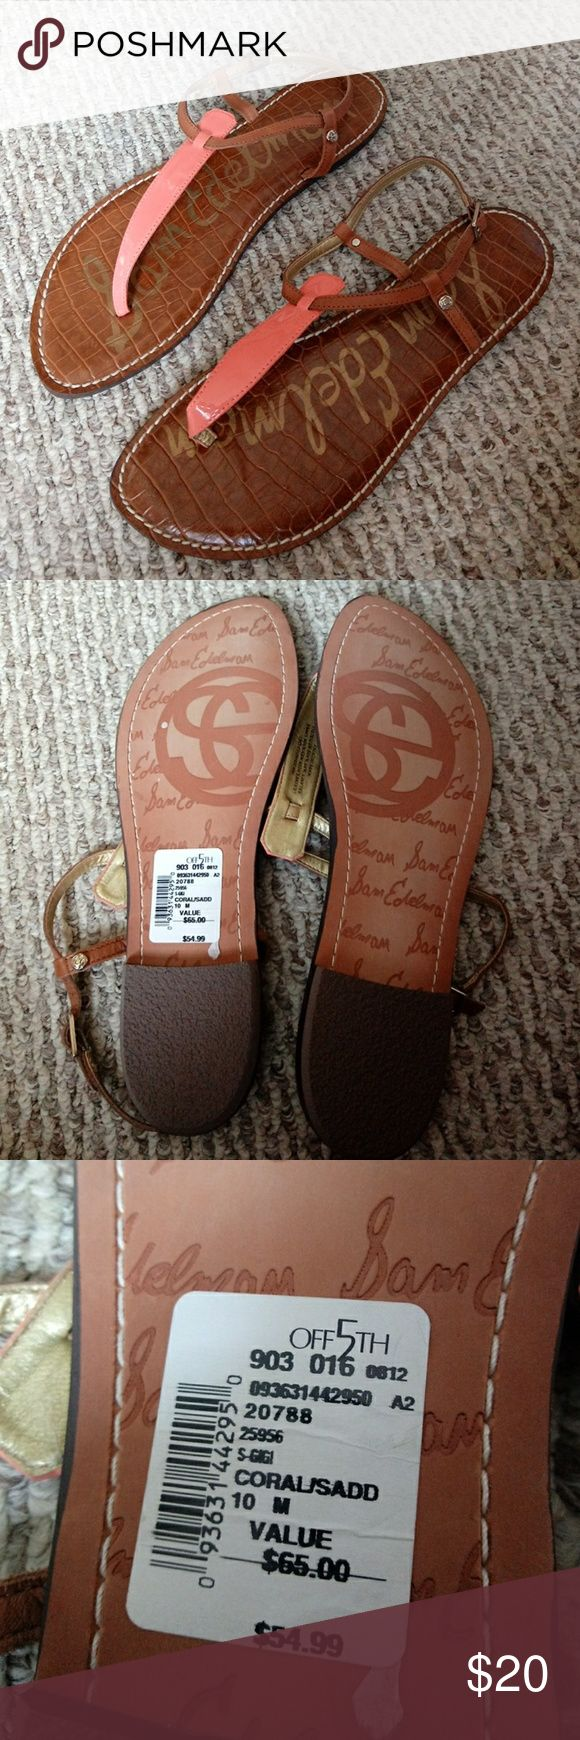 NWT Sam Edelman gigi thong sandals coral New Sam Edelman gigi sandals with leather upper Size 10 bought from Saks off 5th Sam Edelman Shoes Sandals